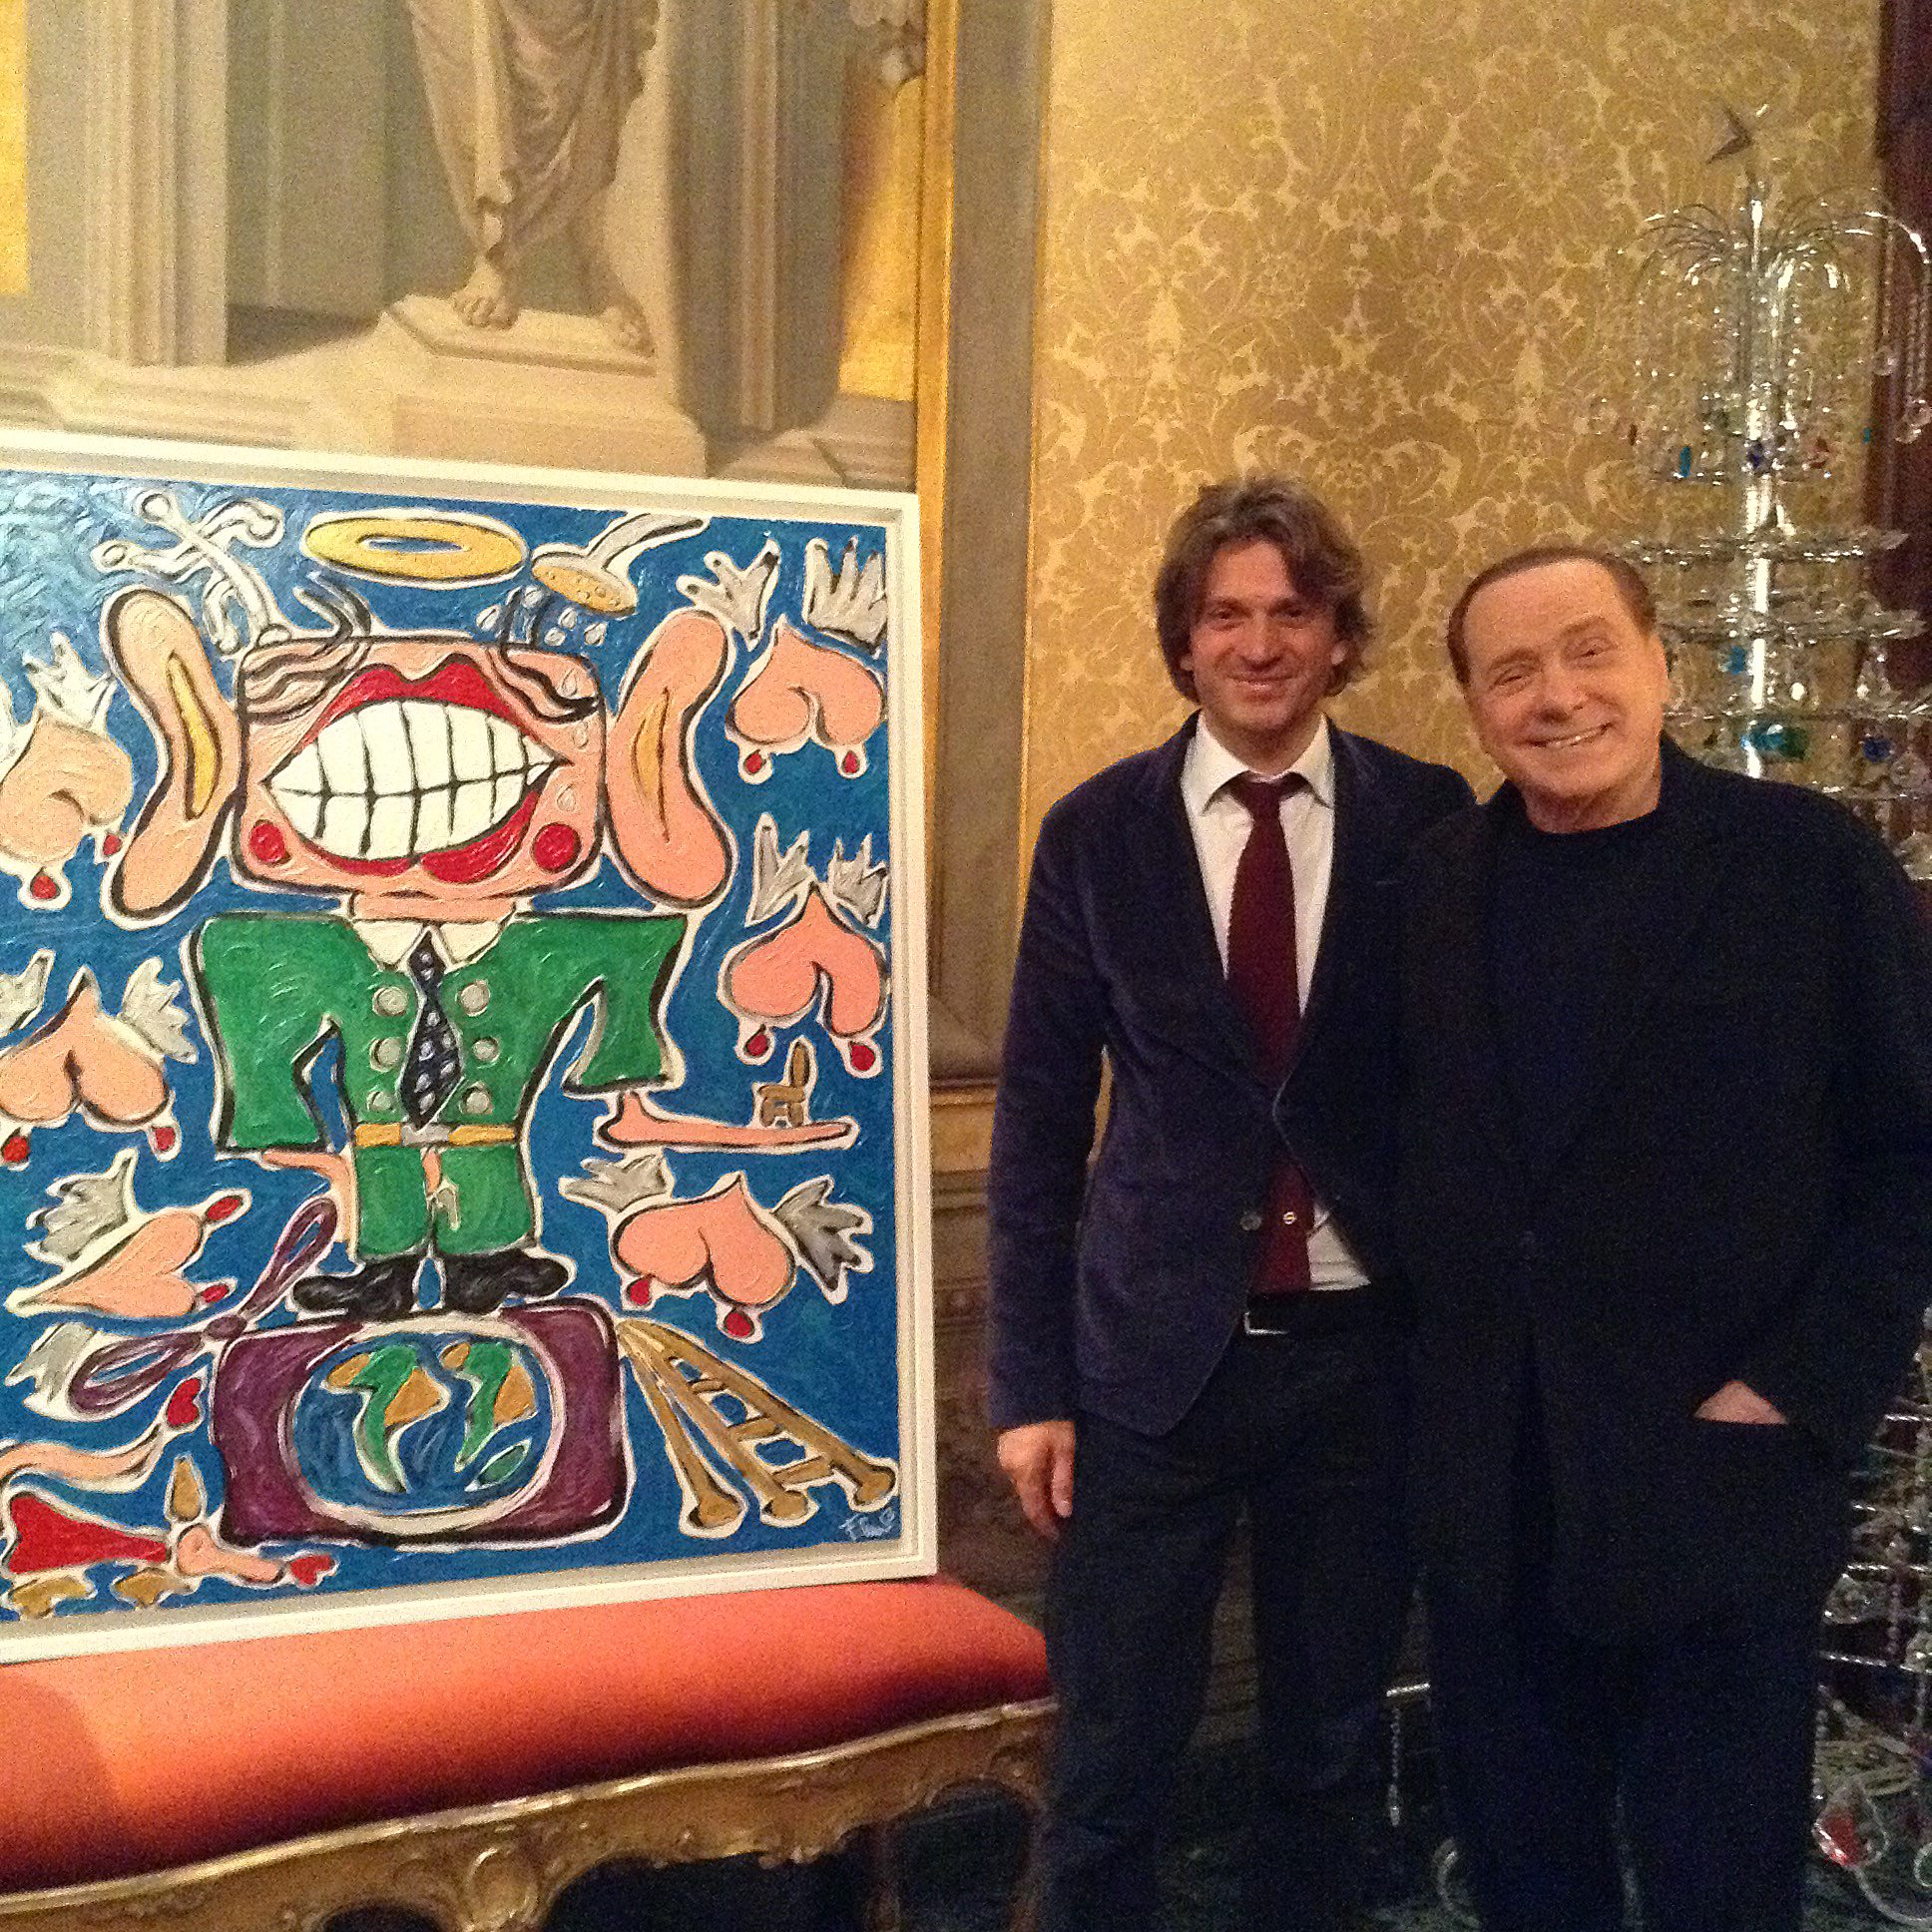 berlusconi and francesco cuomo conteporary artist